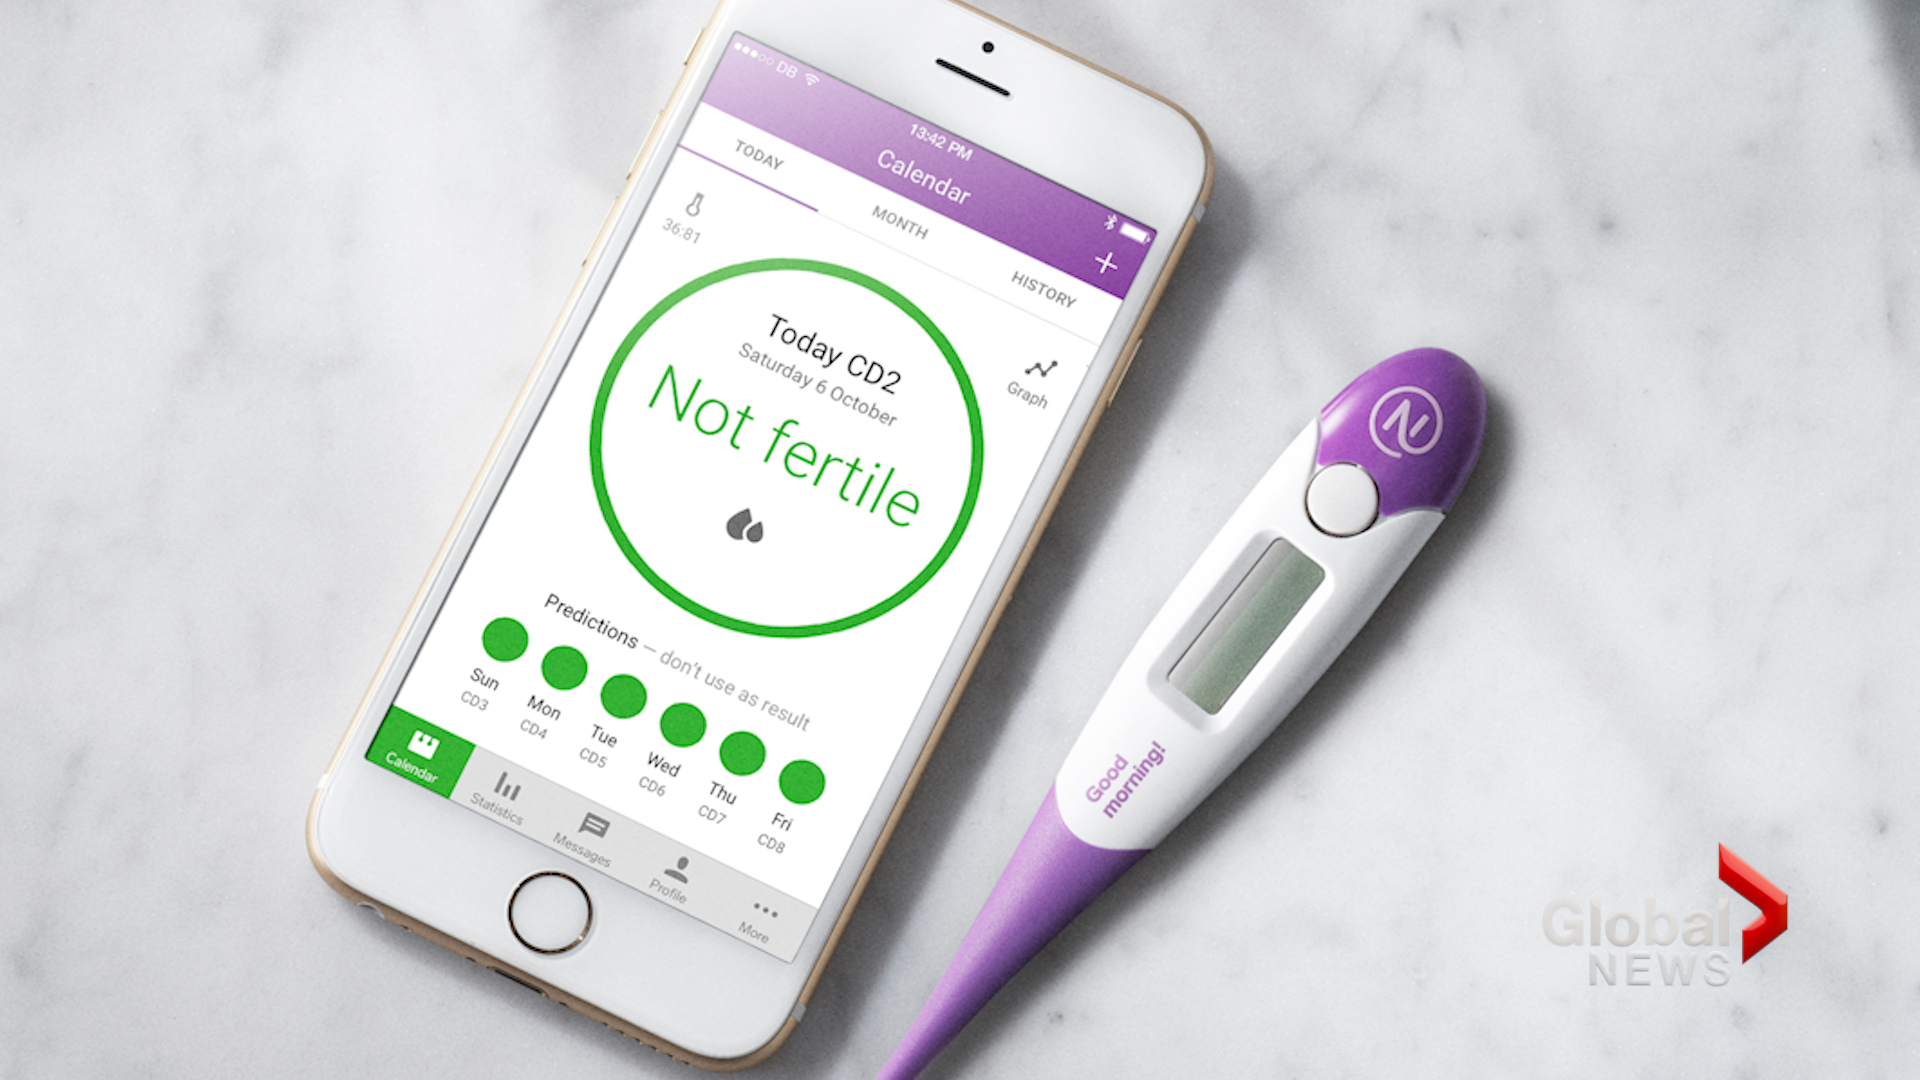 Contraceptive App Hit With Complaints After 37 Women Receive Unwanted Pregnancies